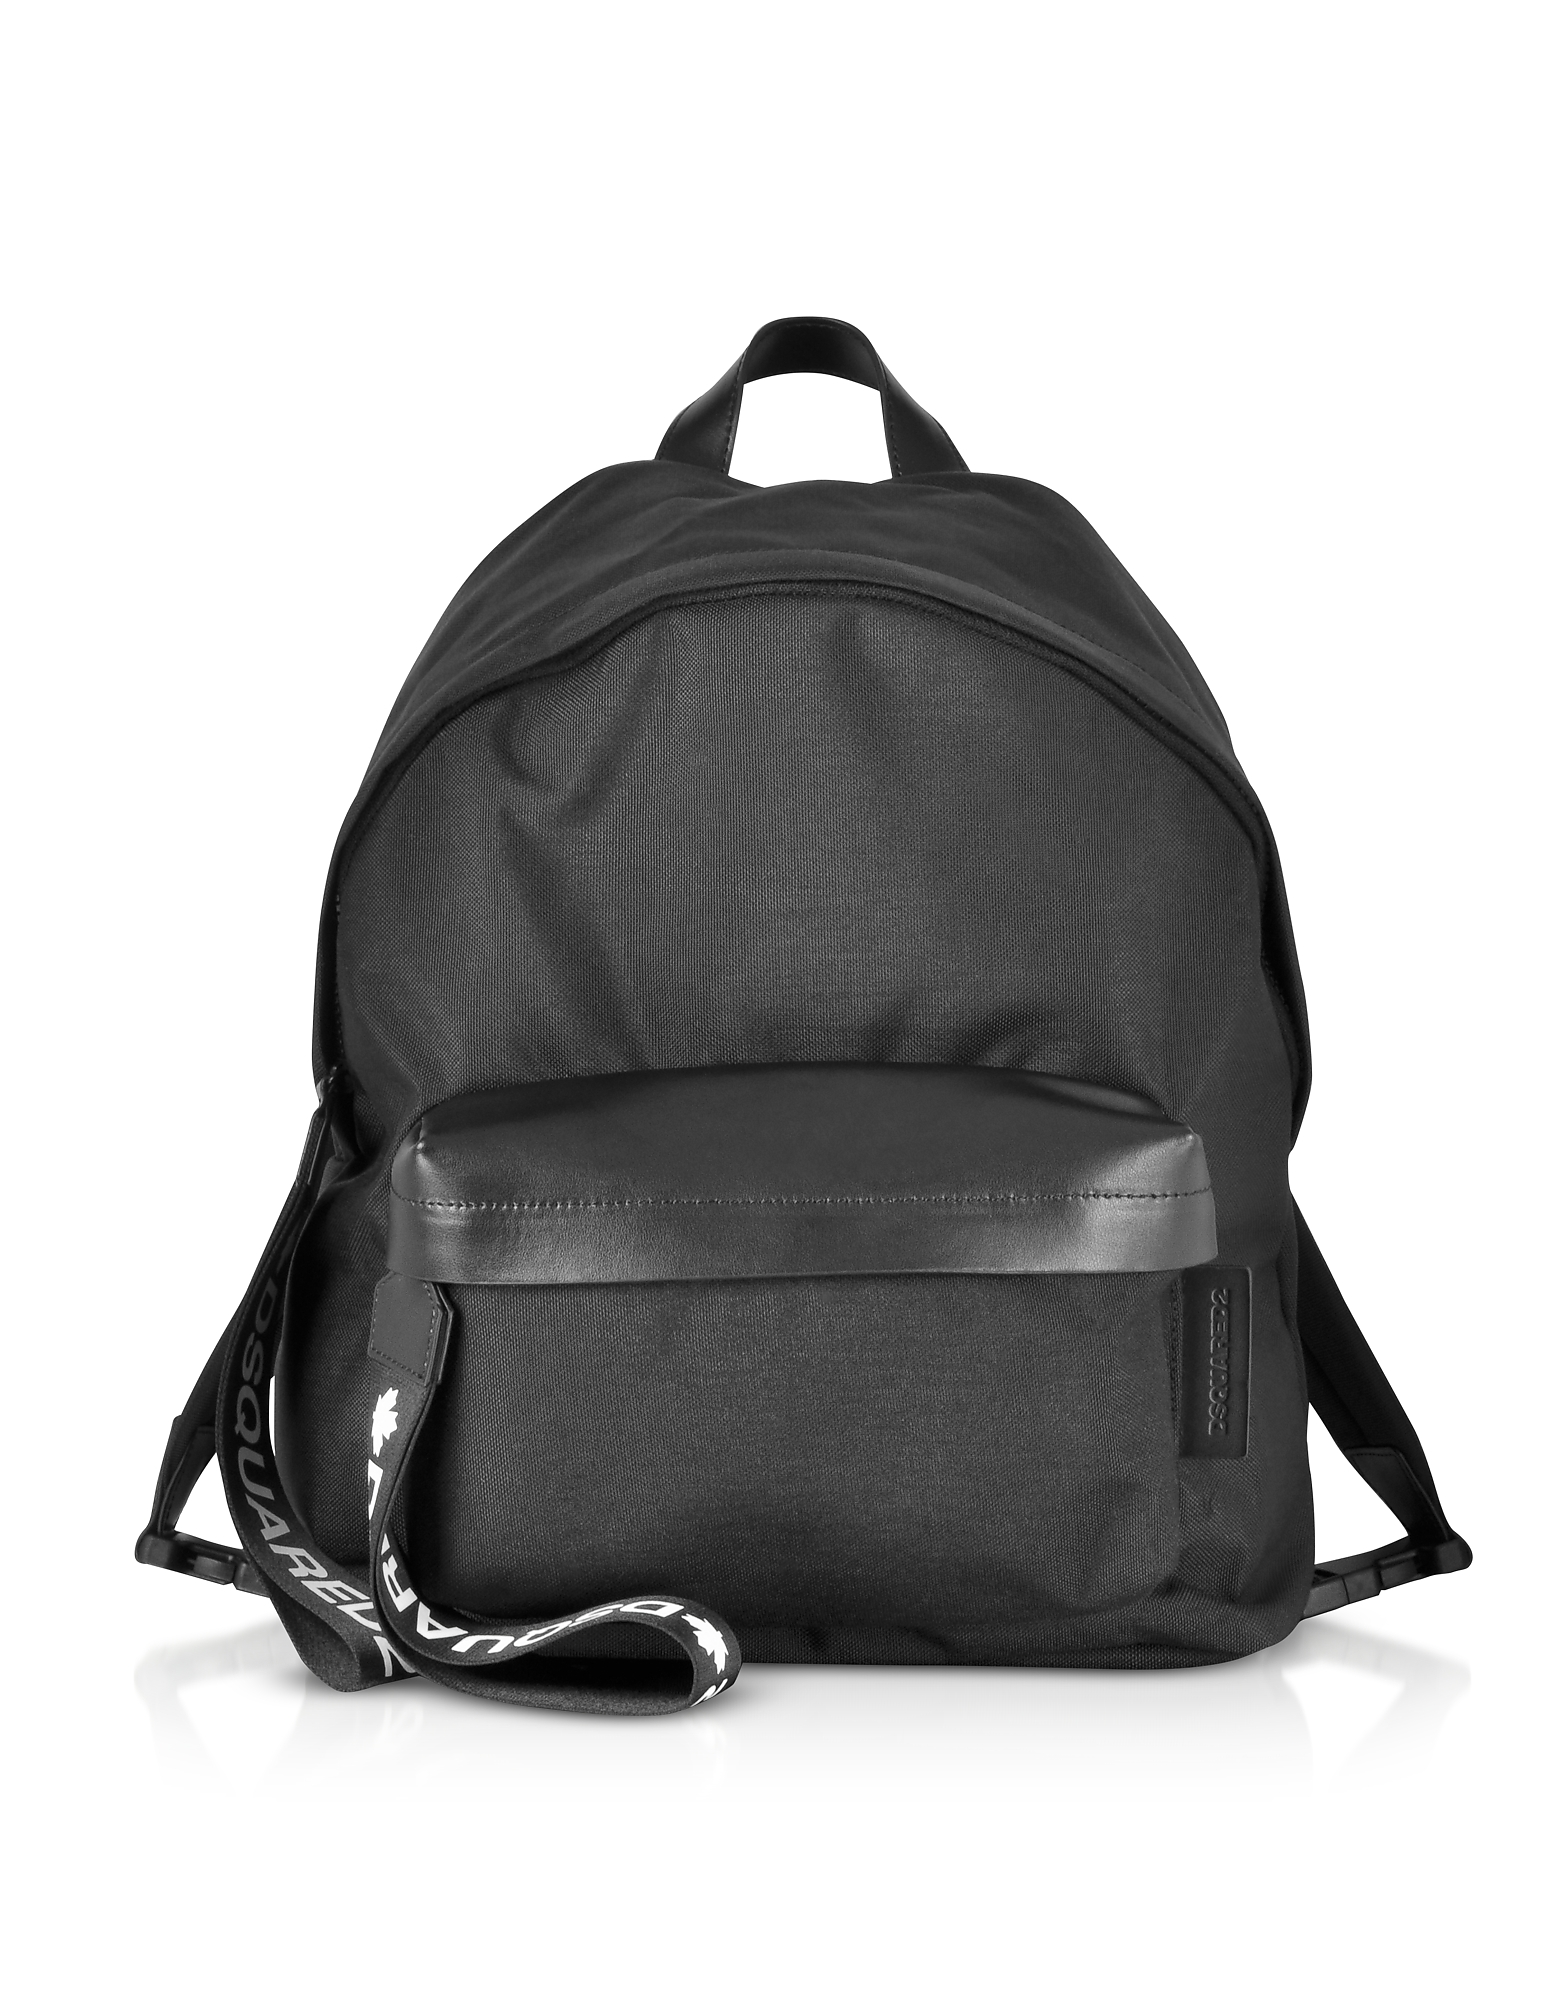 Black Nylon and Leather Signature Backpack